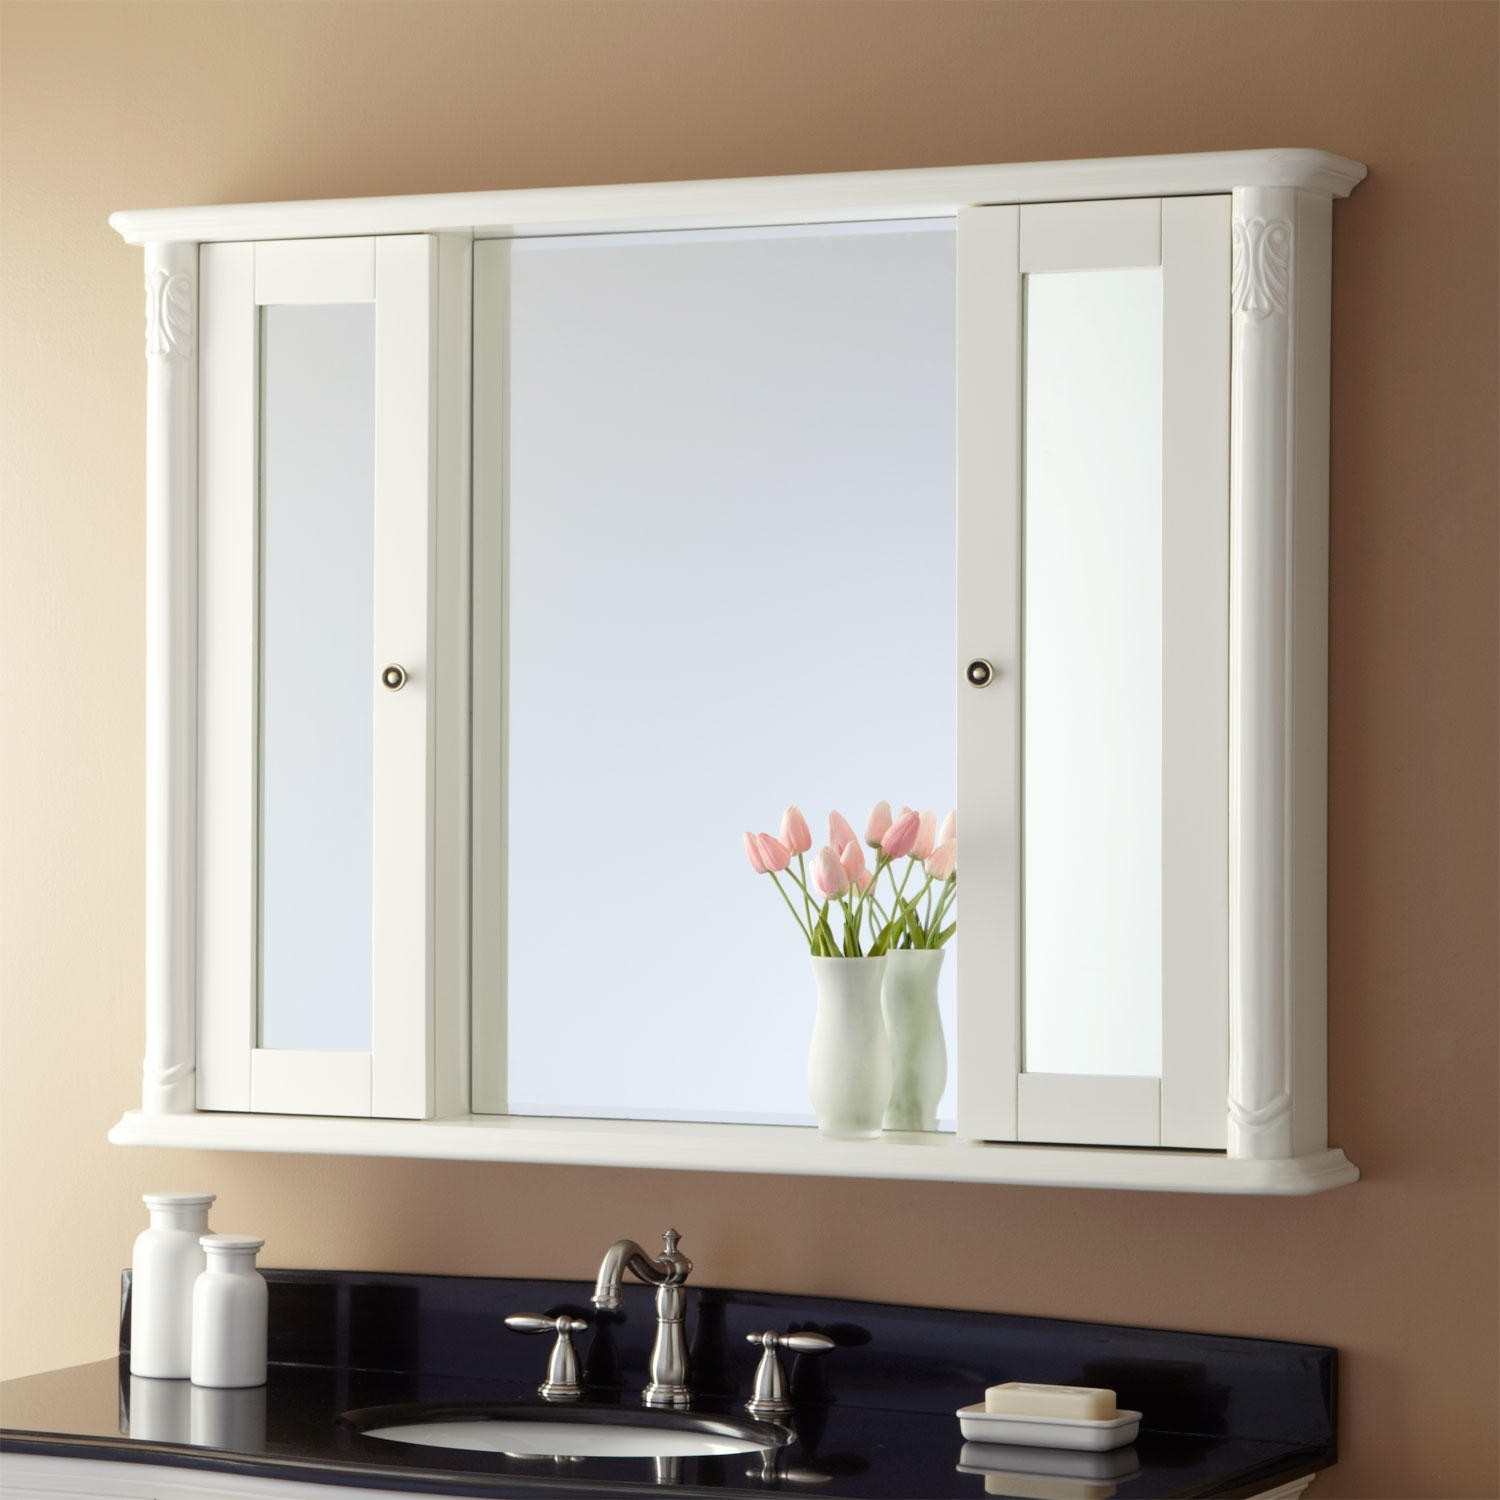 Triple Mirrored Bathroom Cabinet – White